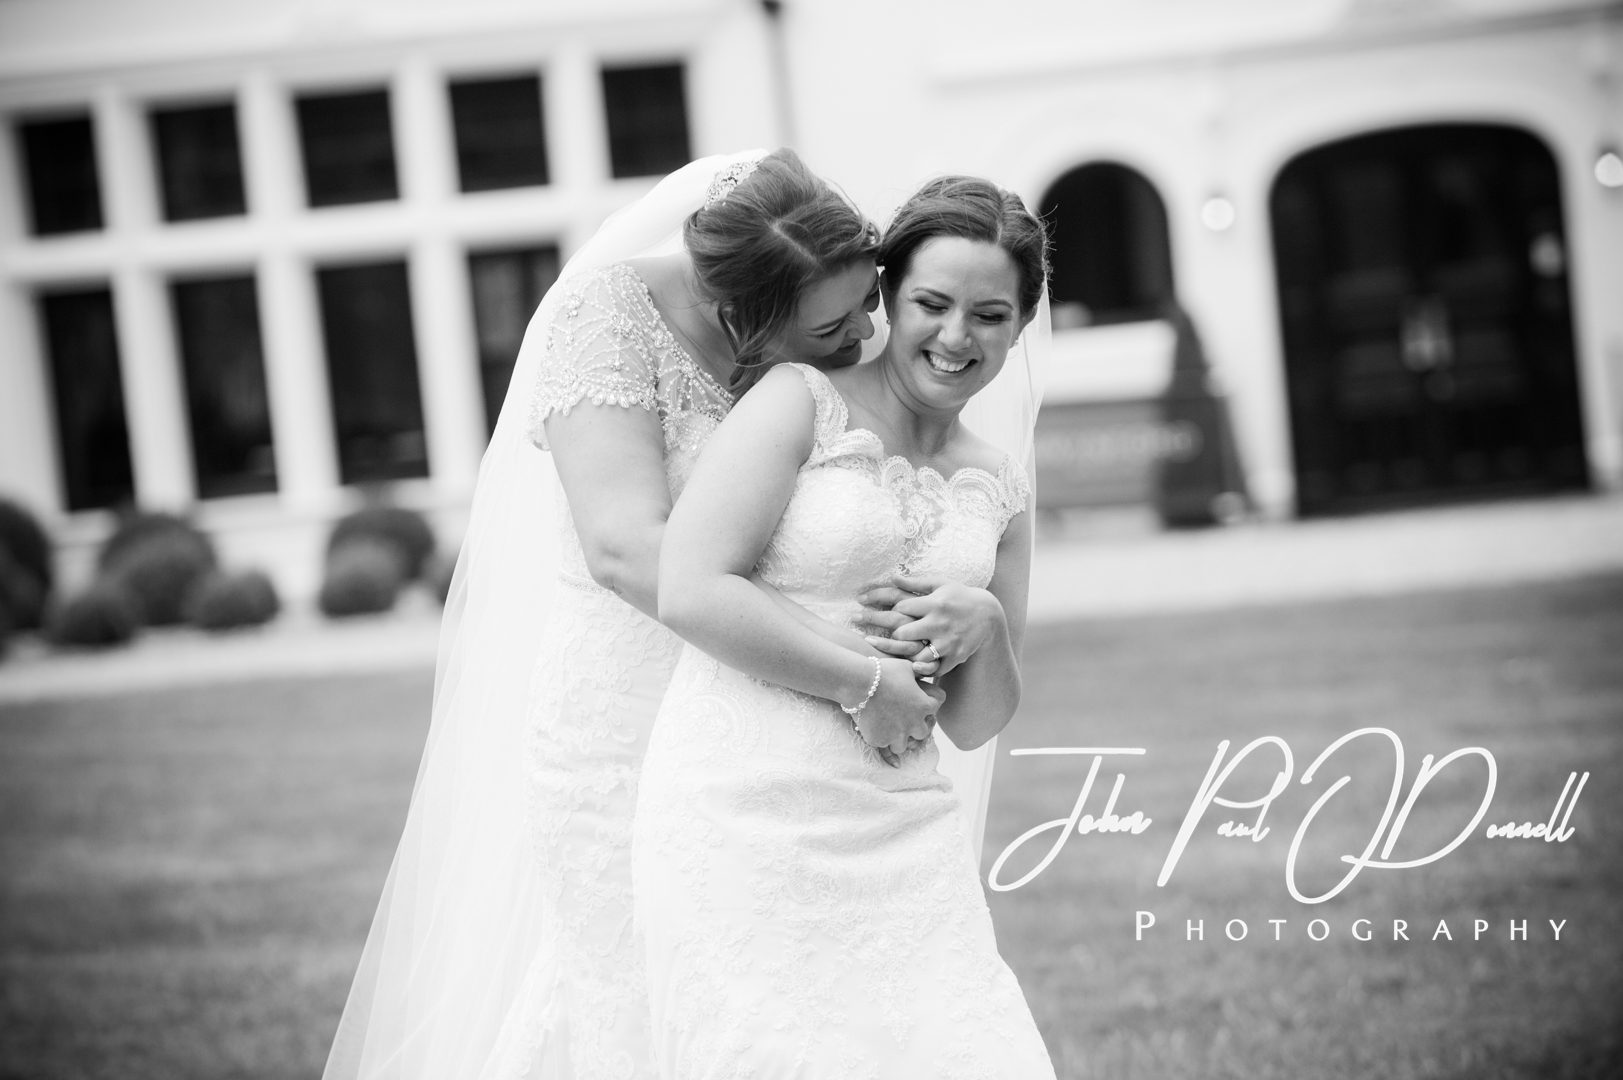 Danielle and Rebeccas wedding at Swynford Manor